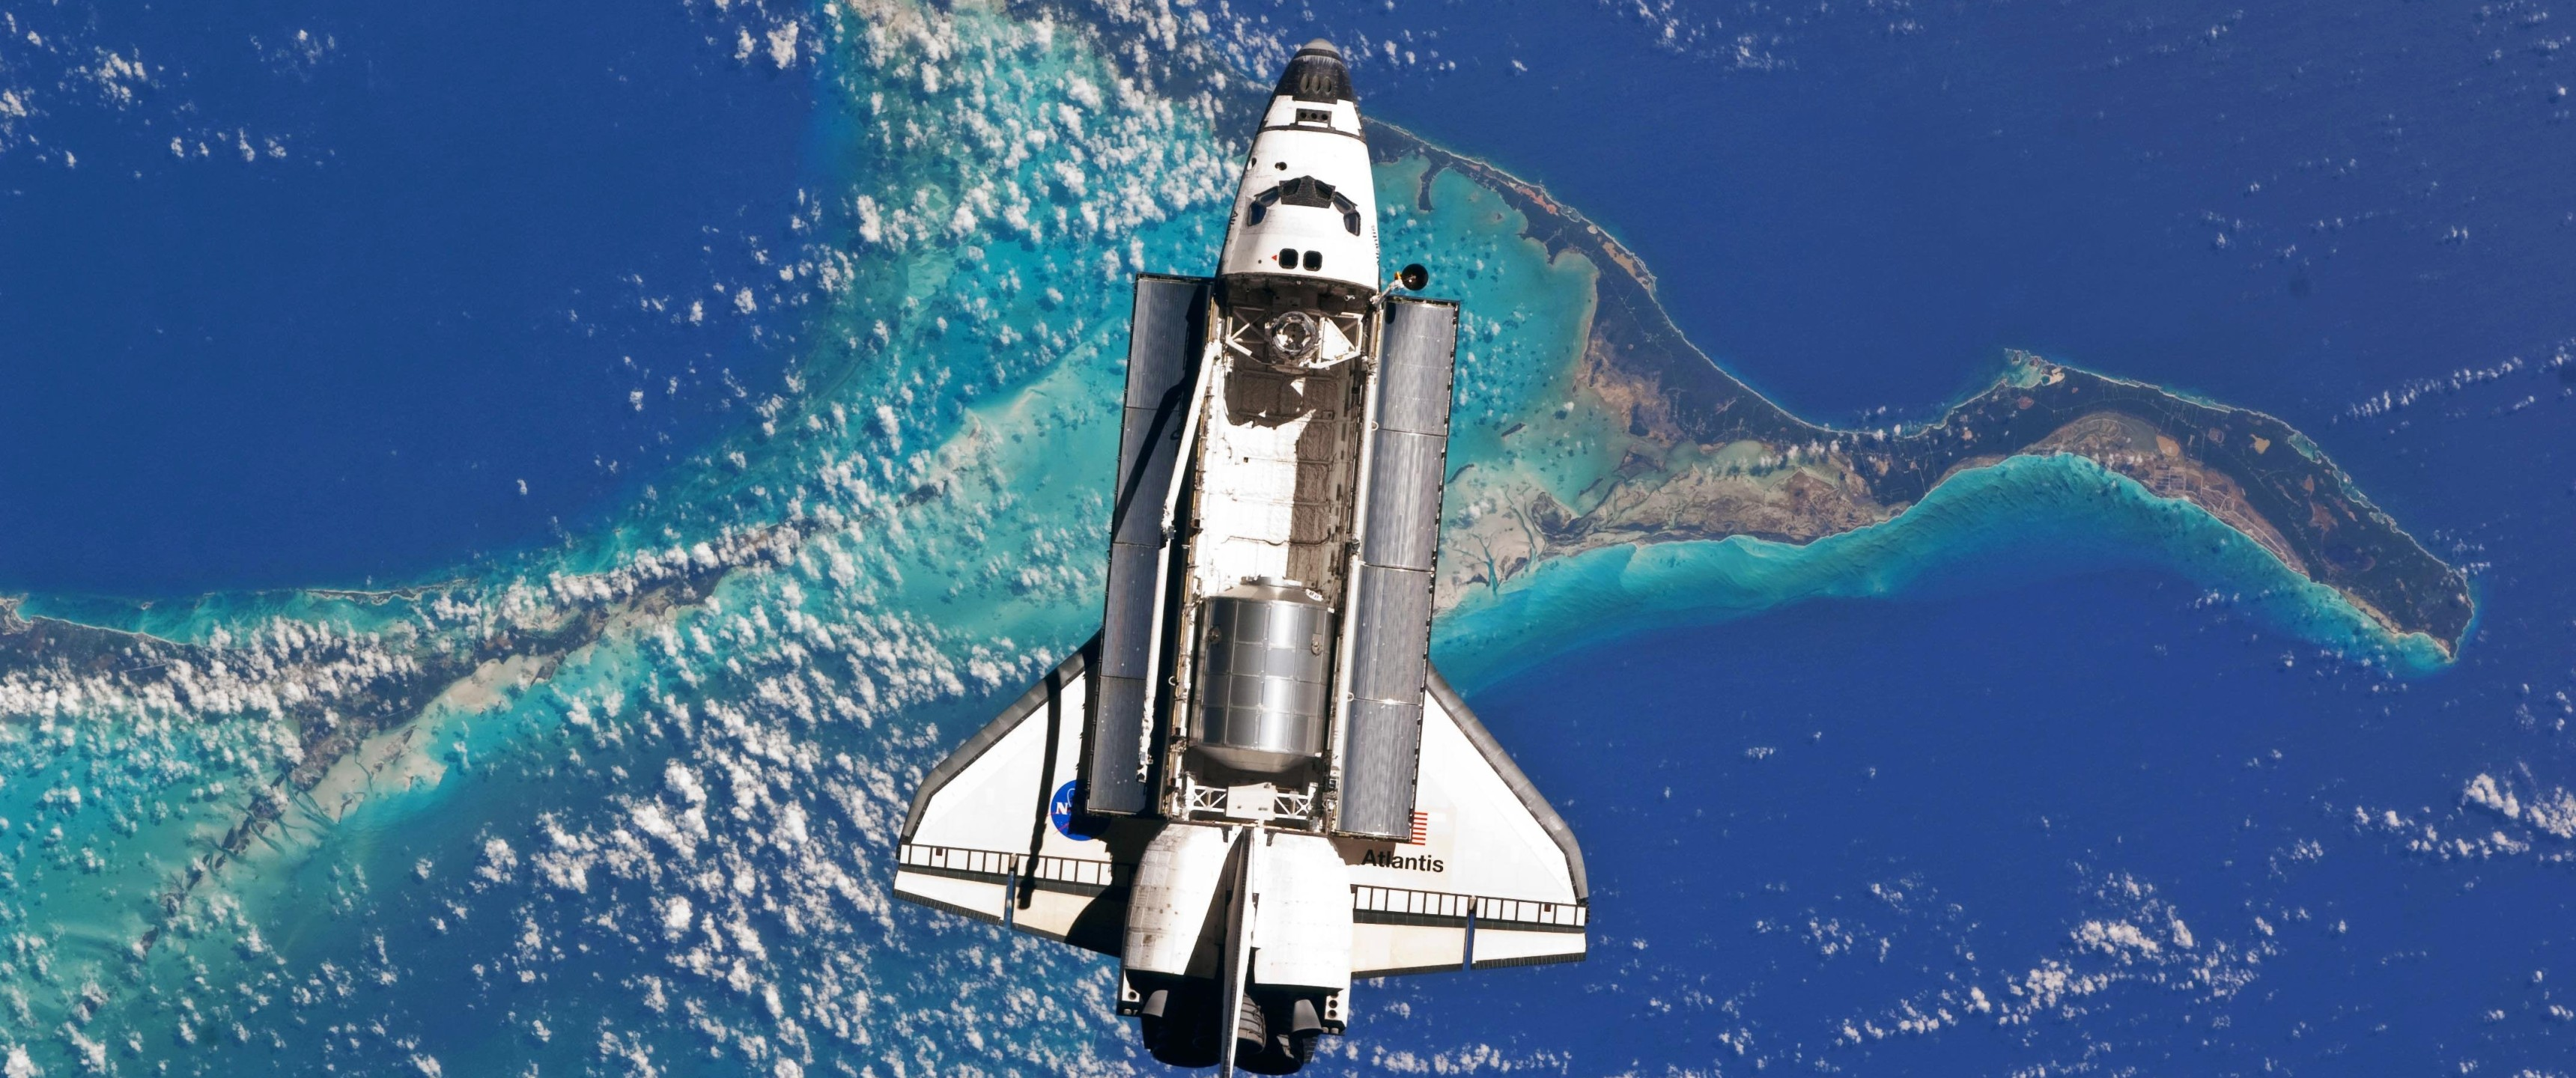 Atlantis Space Shuttle Over Bahamas 4K Wallpaper